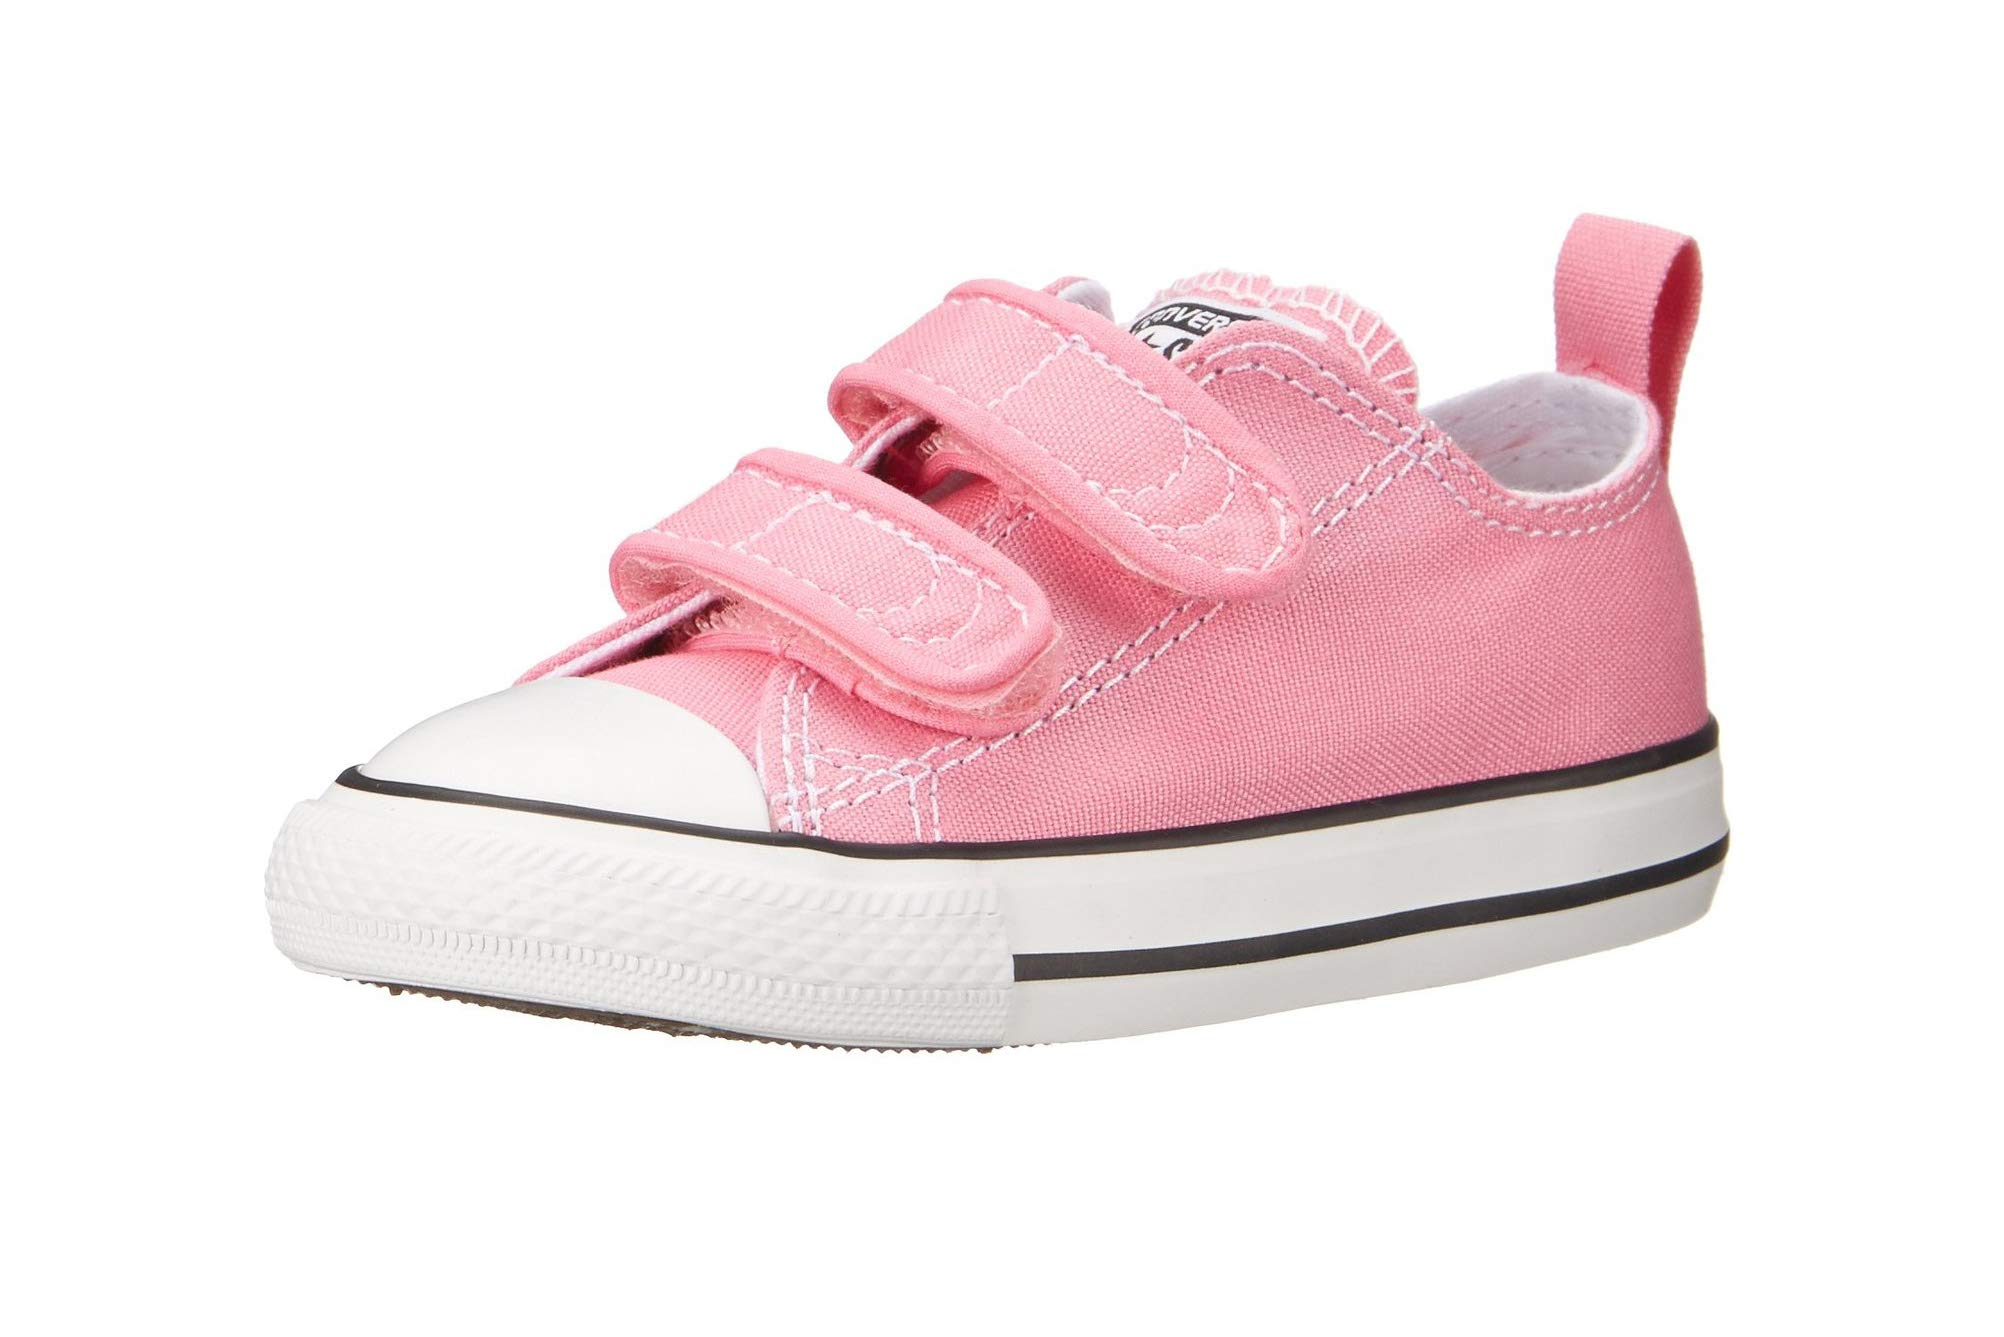 Converse Girls' Chuck Taylor All Star 2V Low Top Sneaker, Pink, 5 M US Toddler by Converse